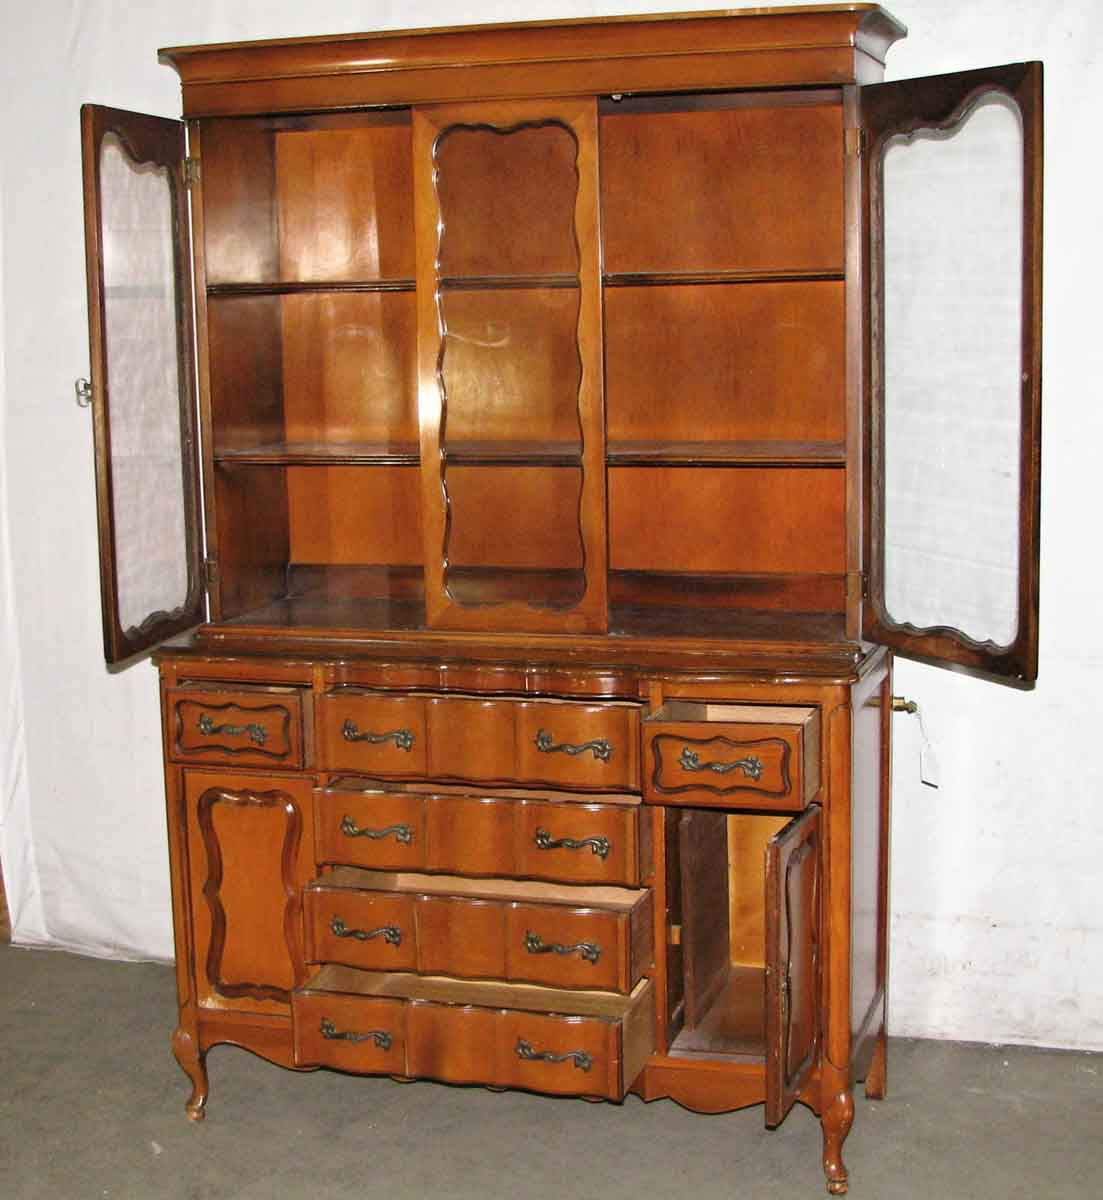 French Provincial Kitchen Cabinets: French Provincial China Cabinet